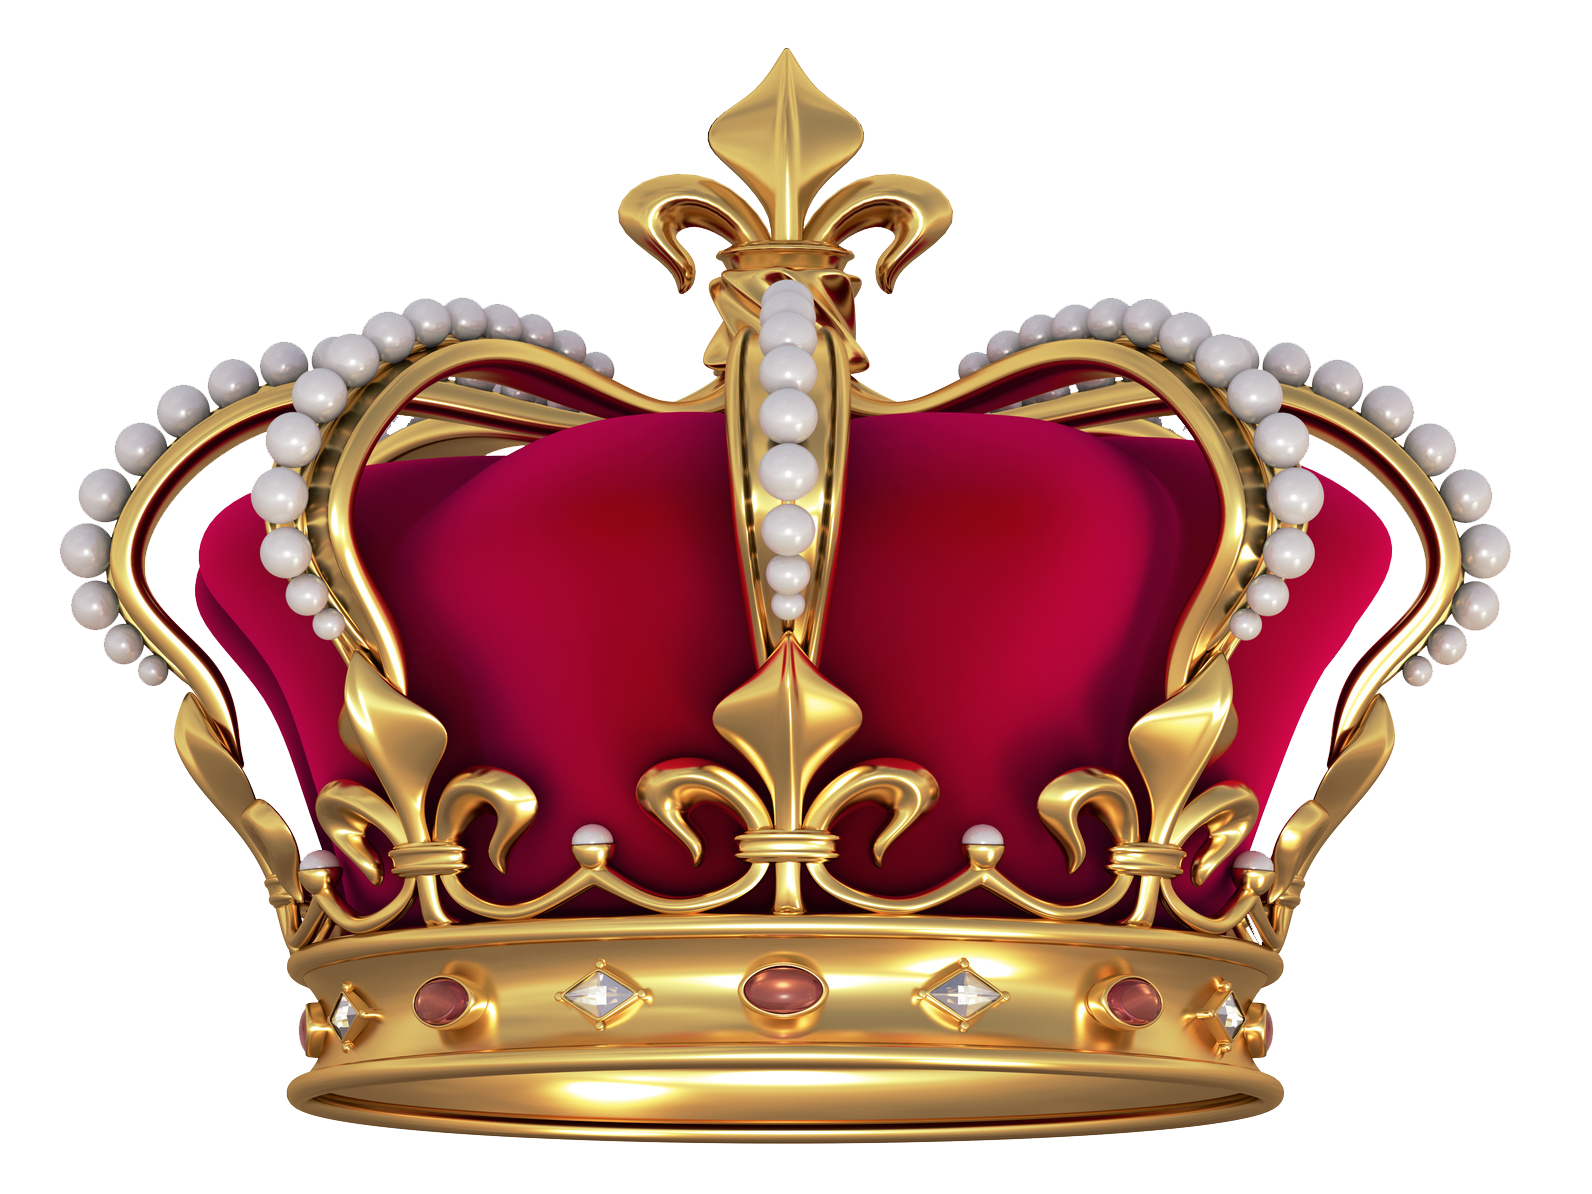 Royal queen crown clipart graphic library Изображение для Royal Queen Crown обои для Android # k7gvh | Декупаж ... graphic library